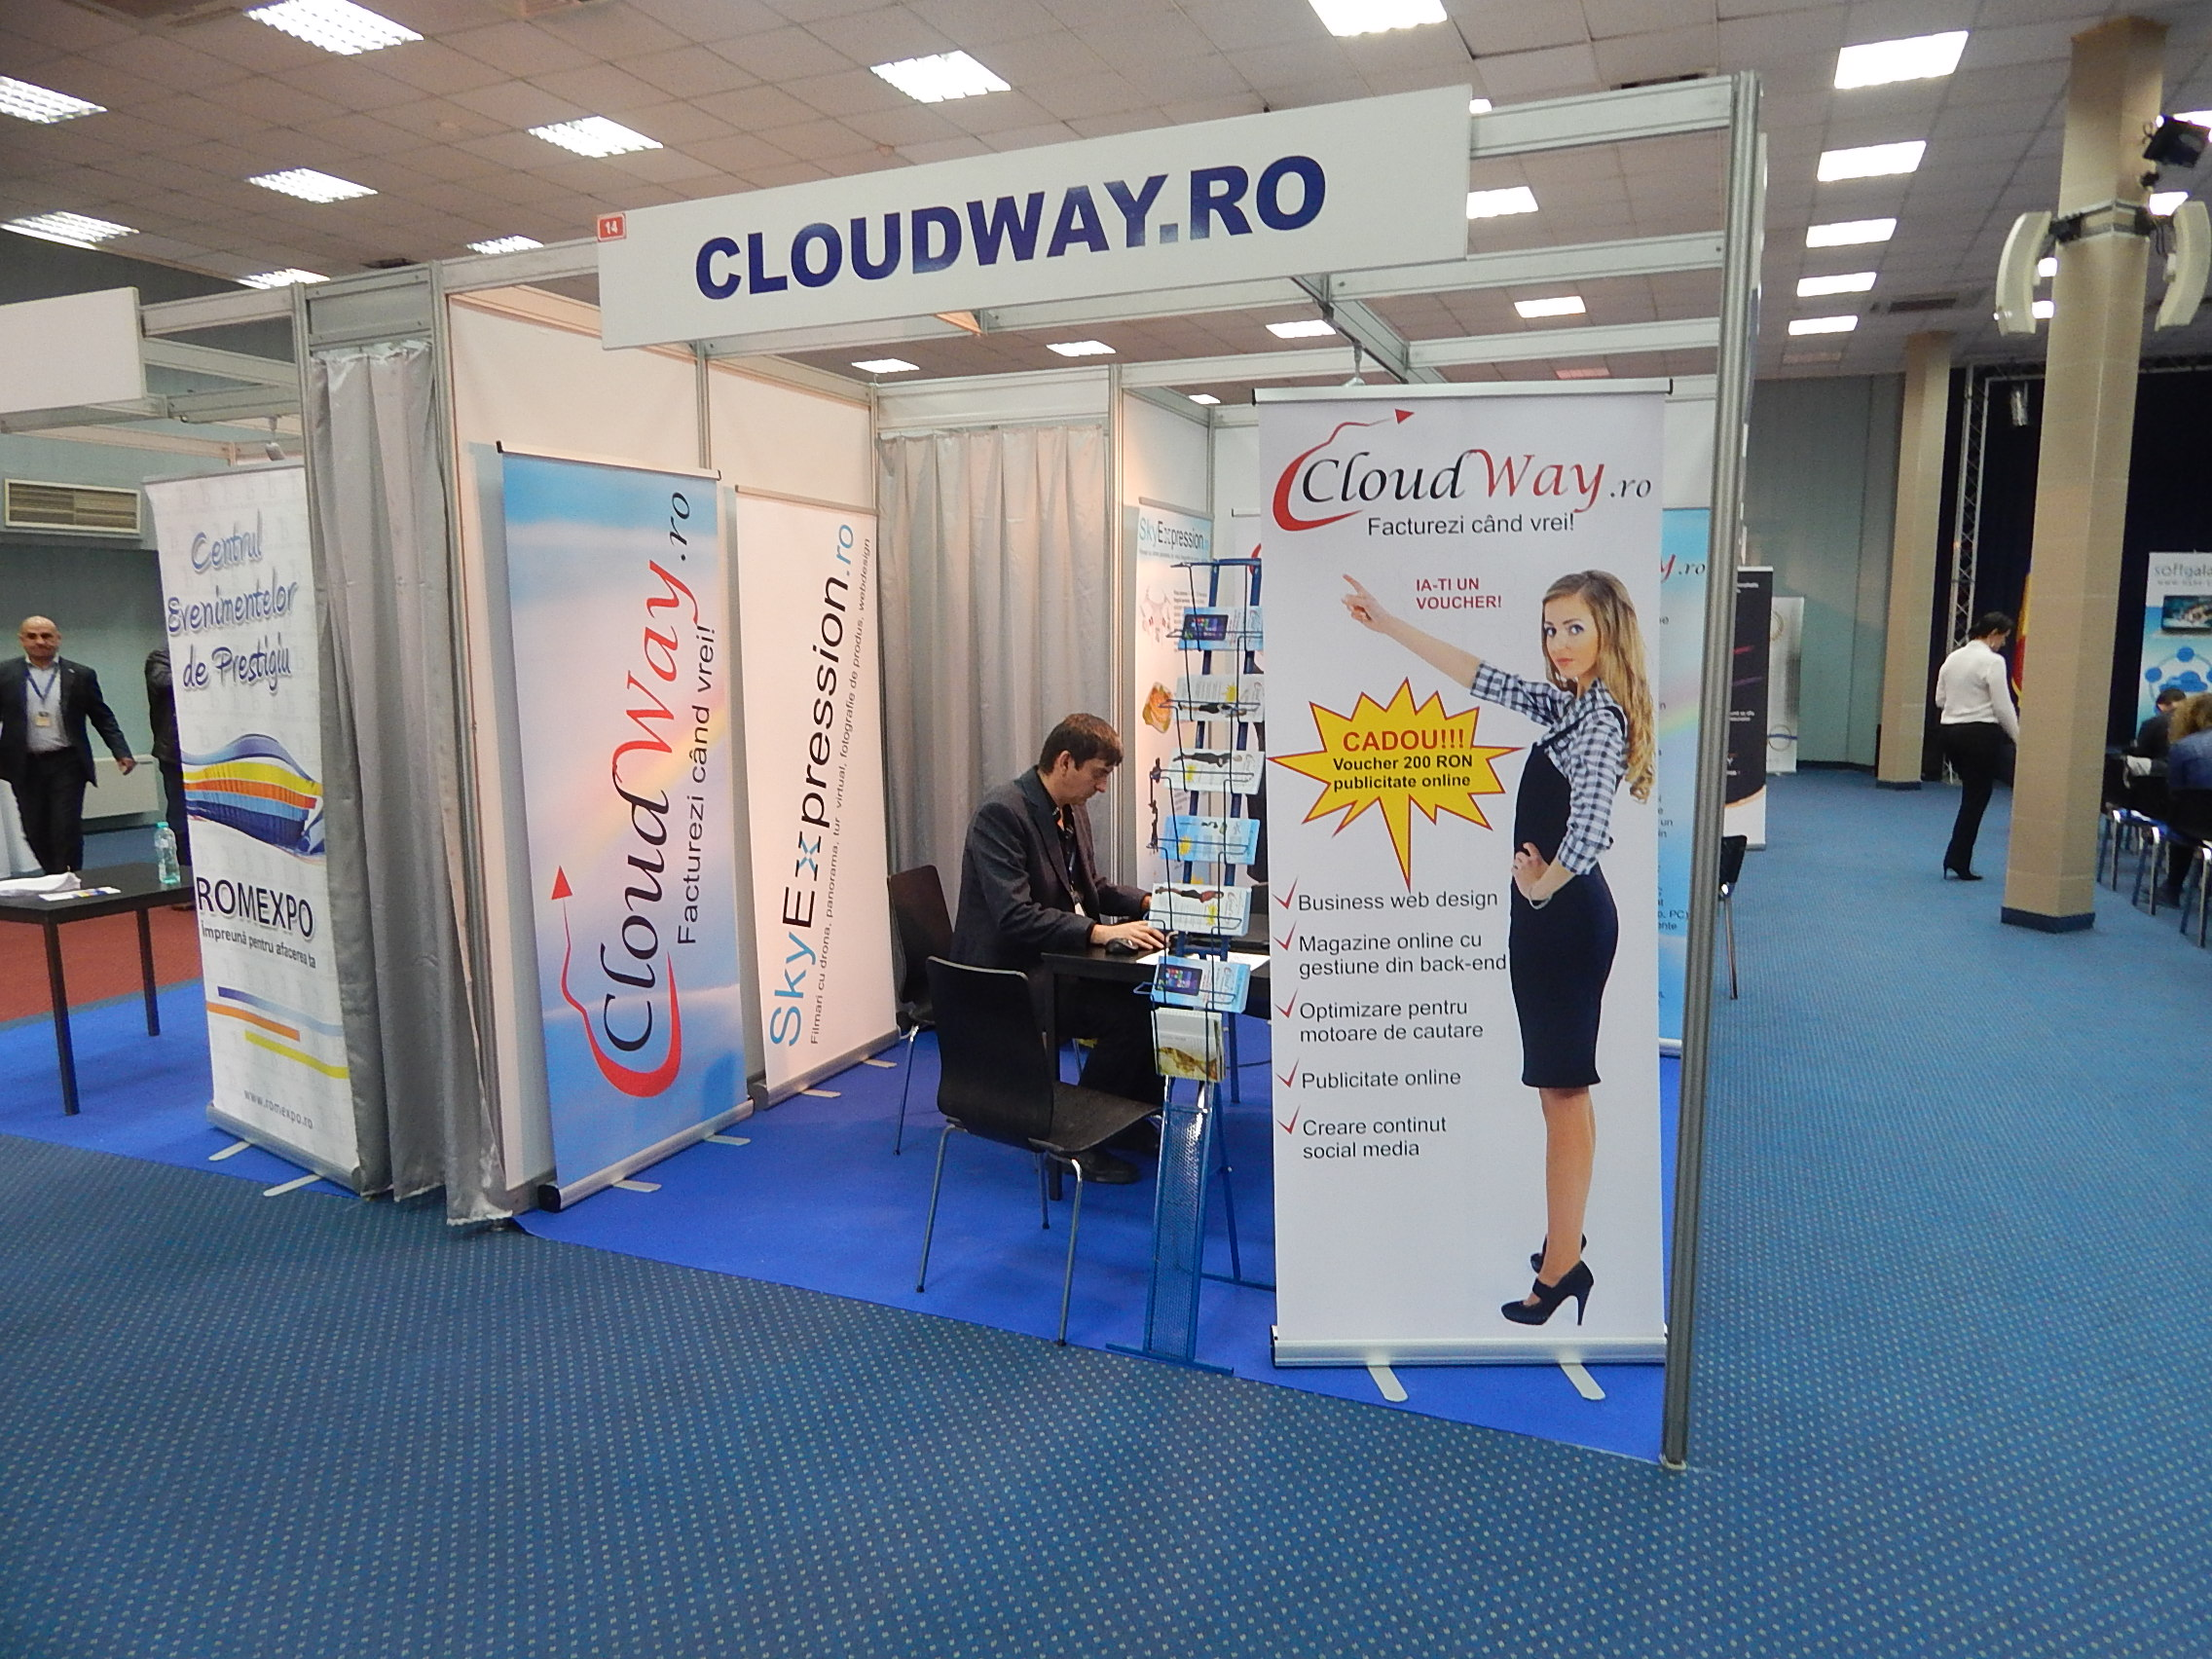 IMM Forum 2015 -  stand cloudway.ro si skyexpression.ro